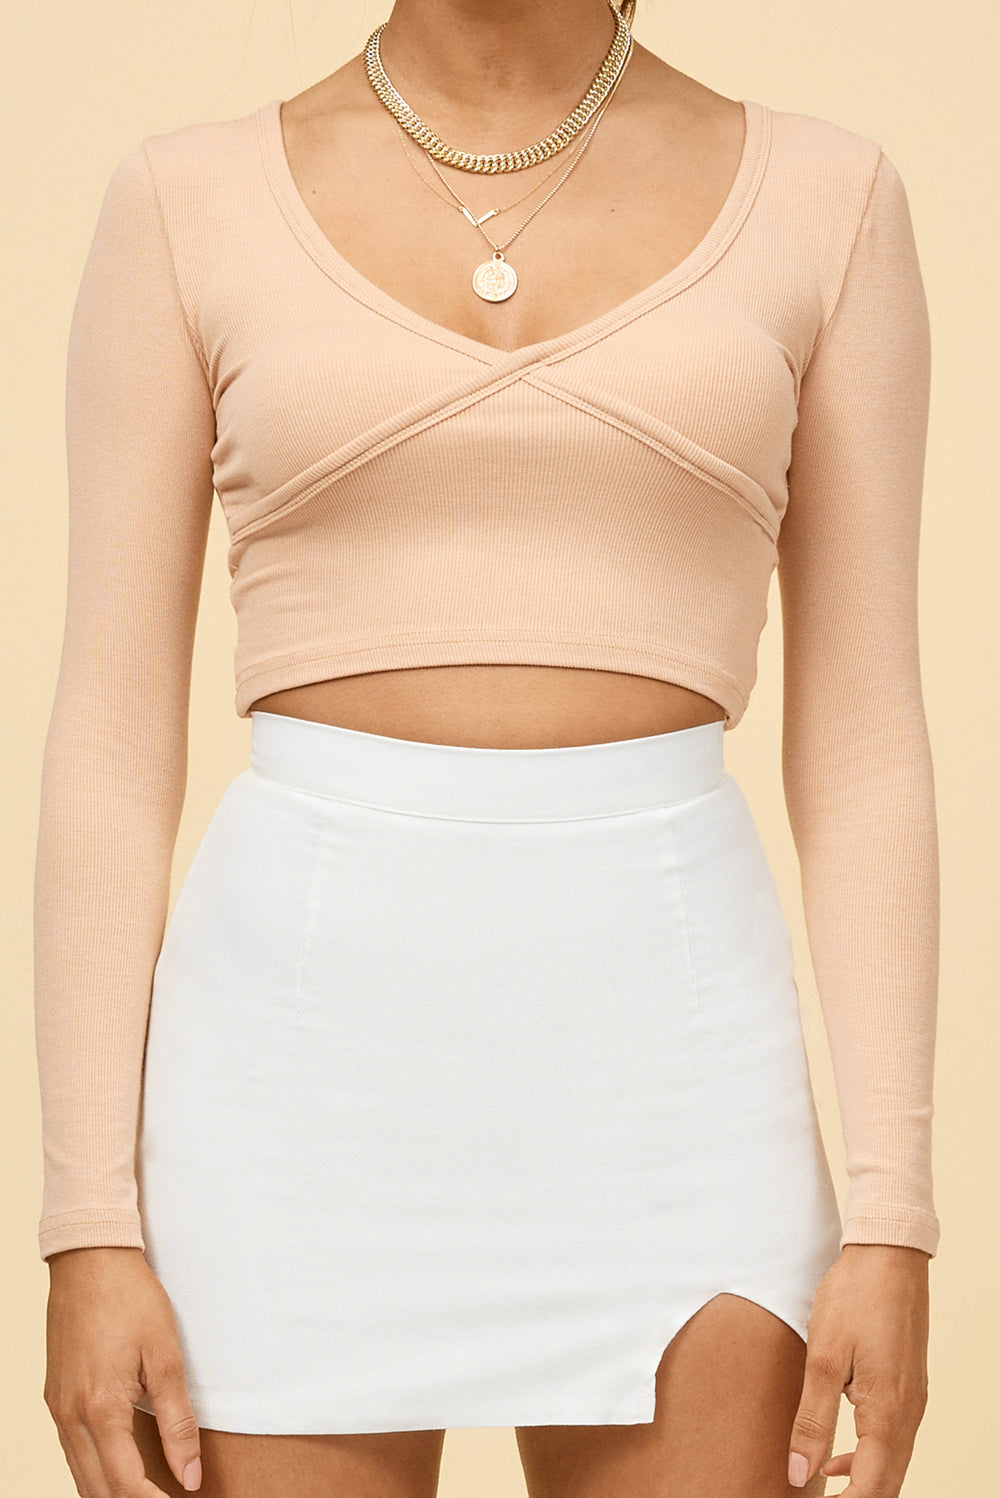 beige long sleeve crop top, crop top, beige crop top